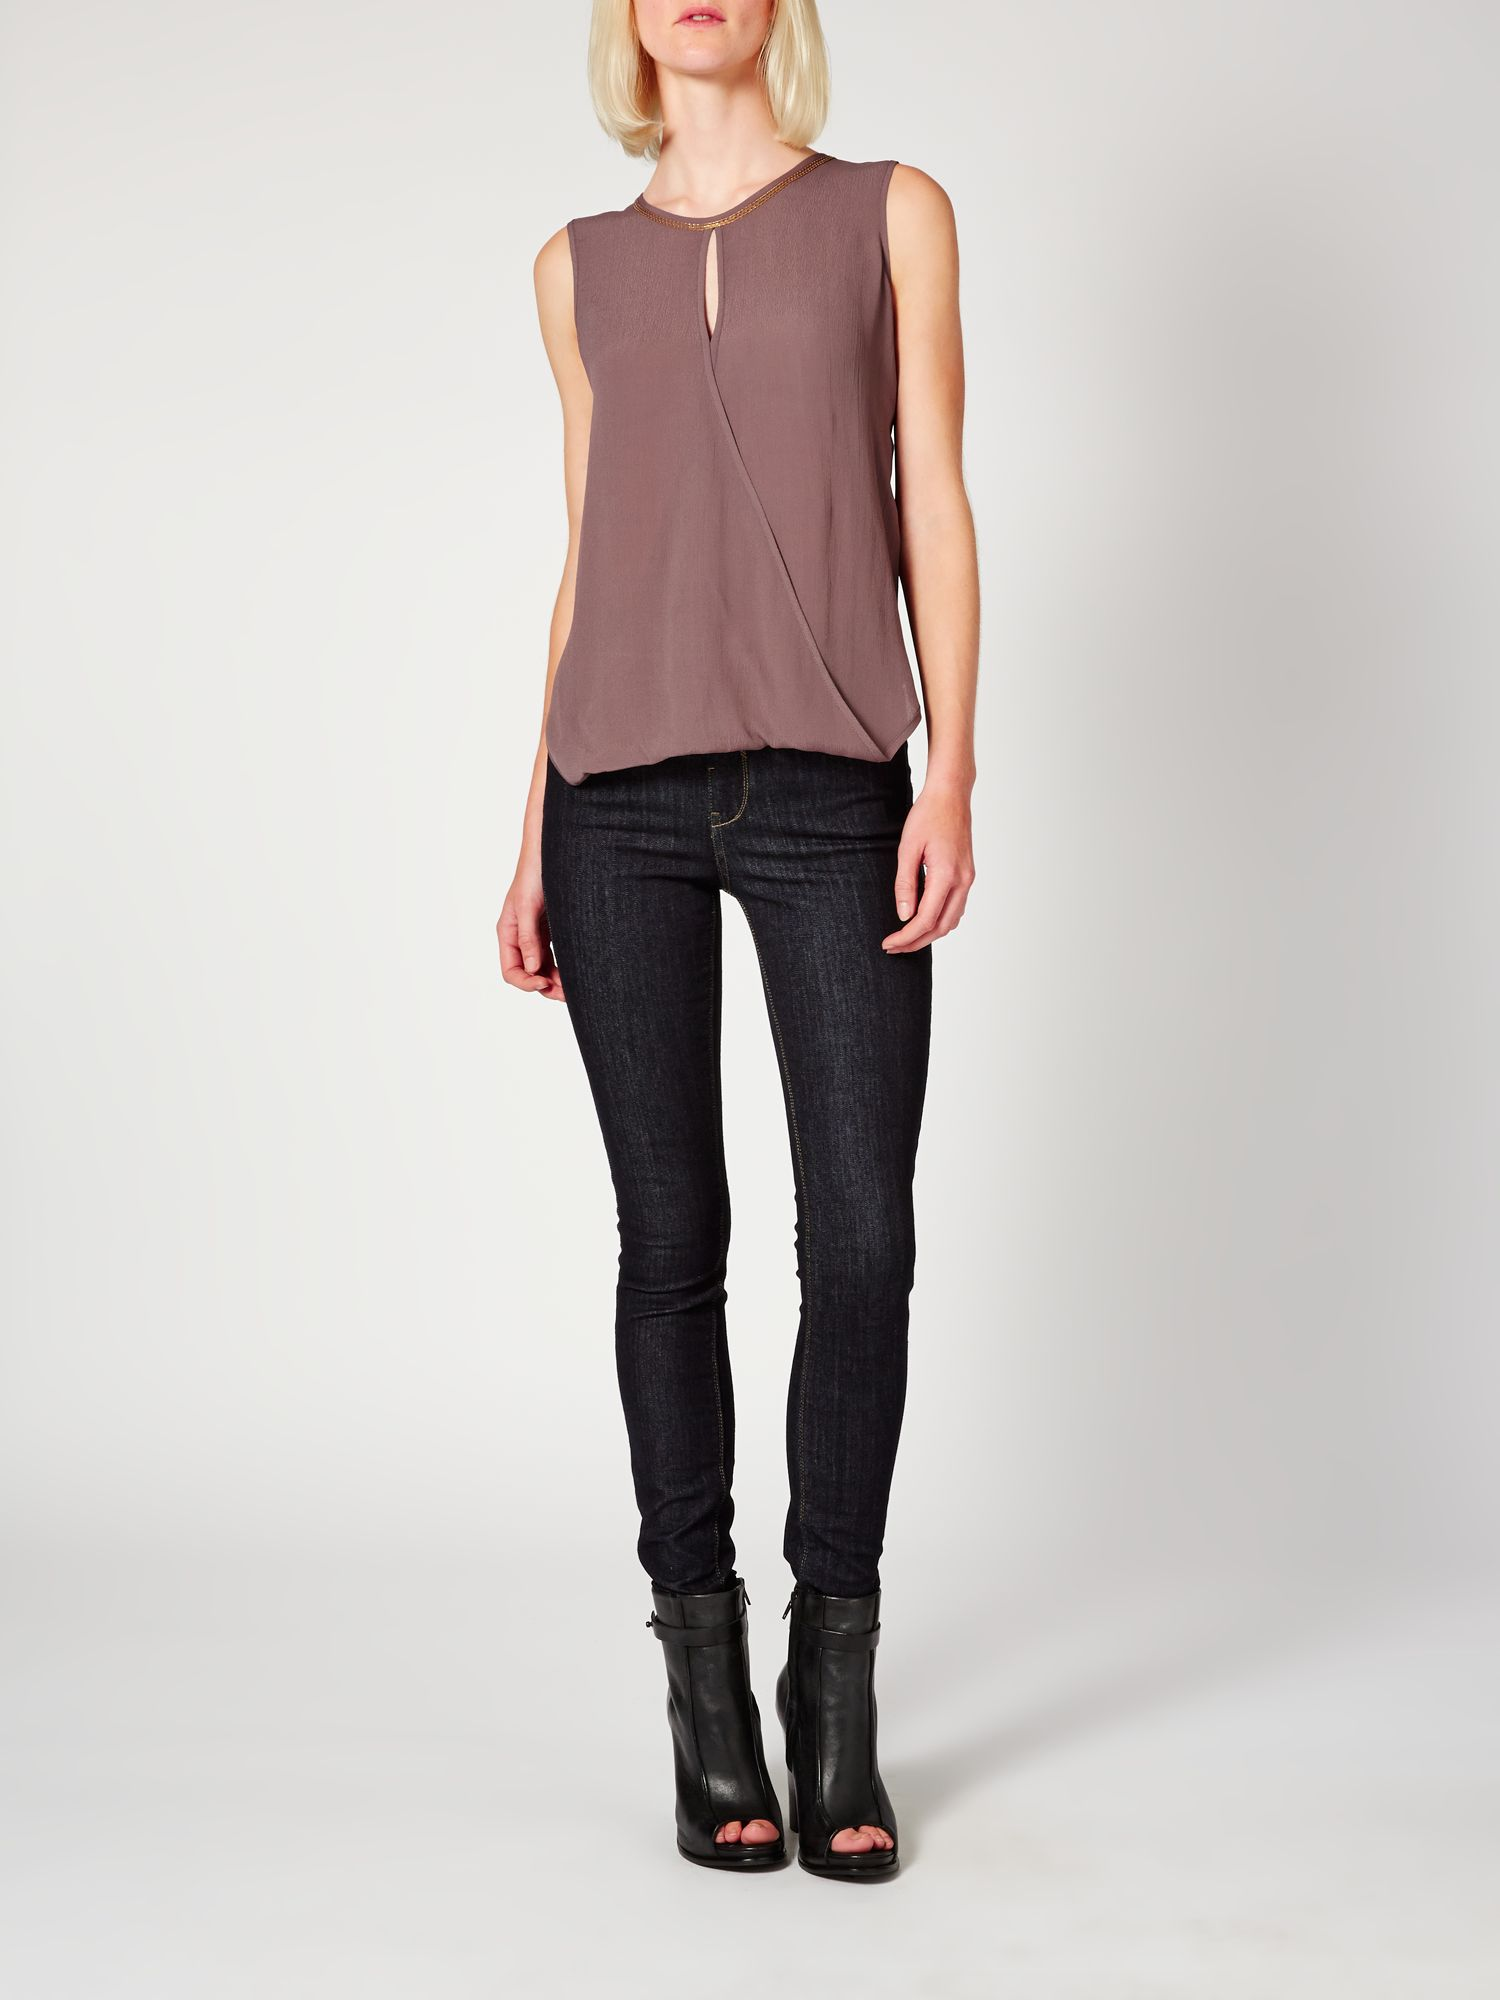 Chain embellishment wrap top